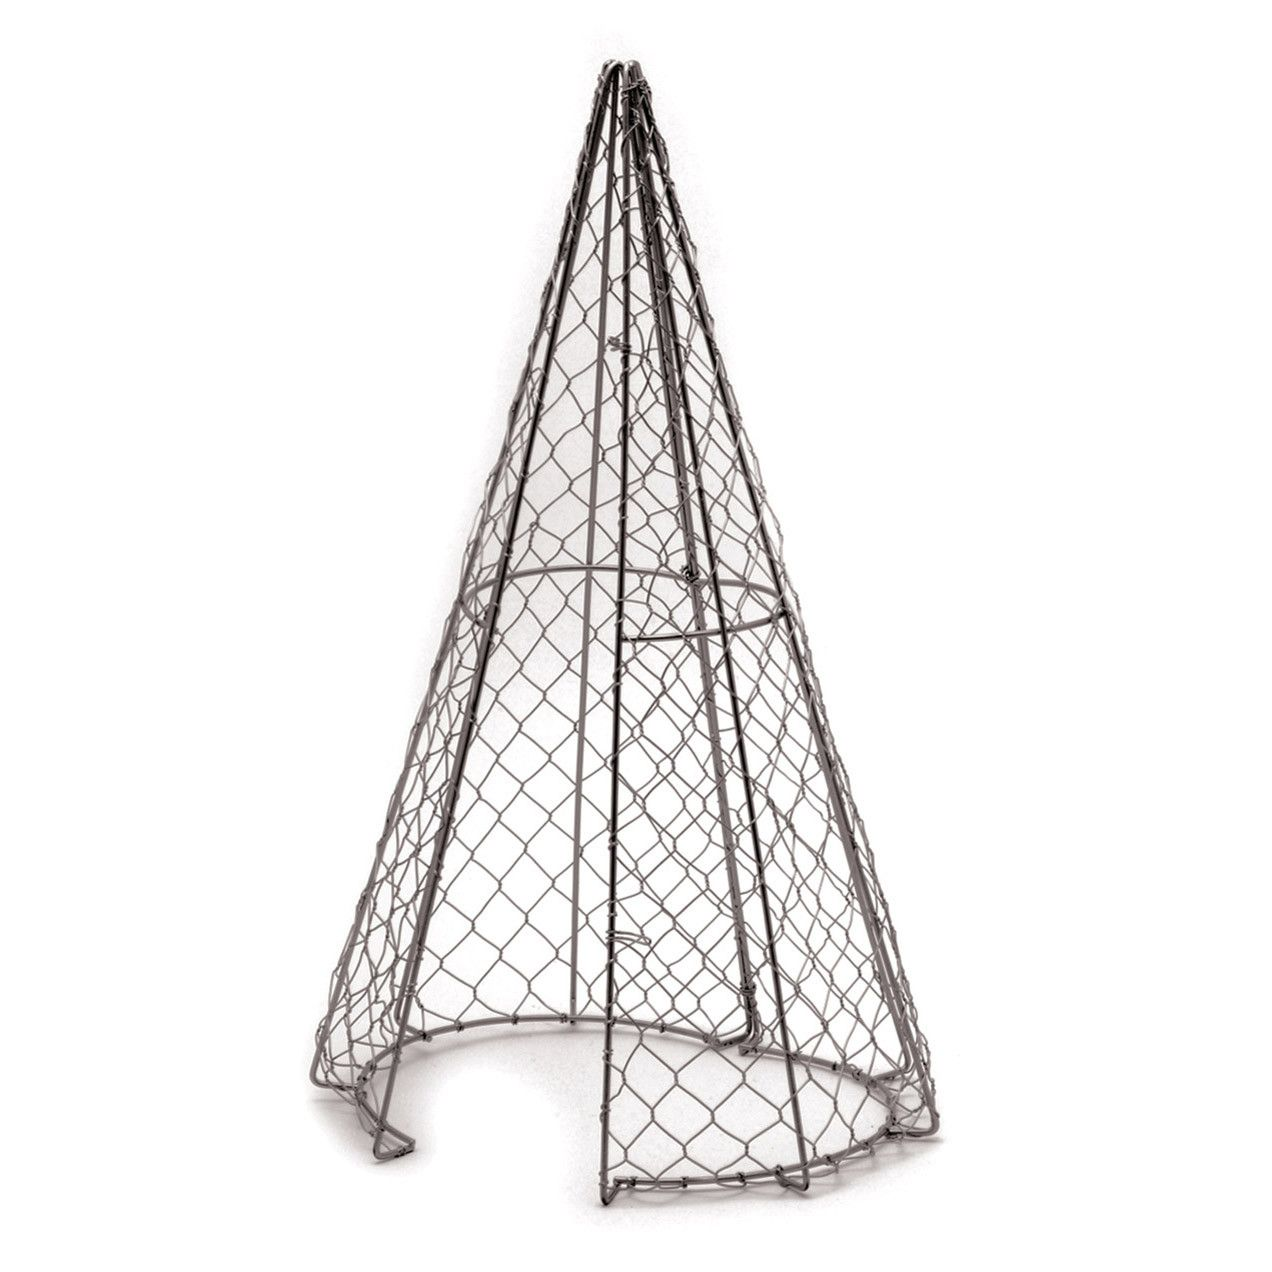 Topiary Frame - Cone | Topiary | Pinterest | Topiary, Garden and ...